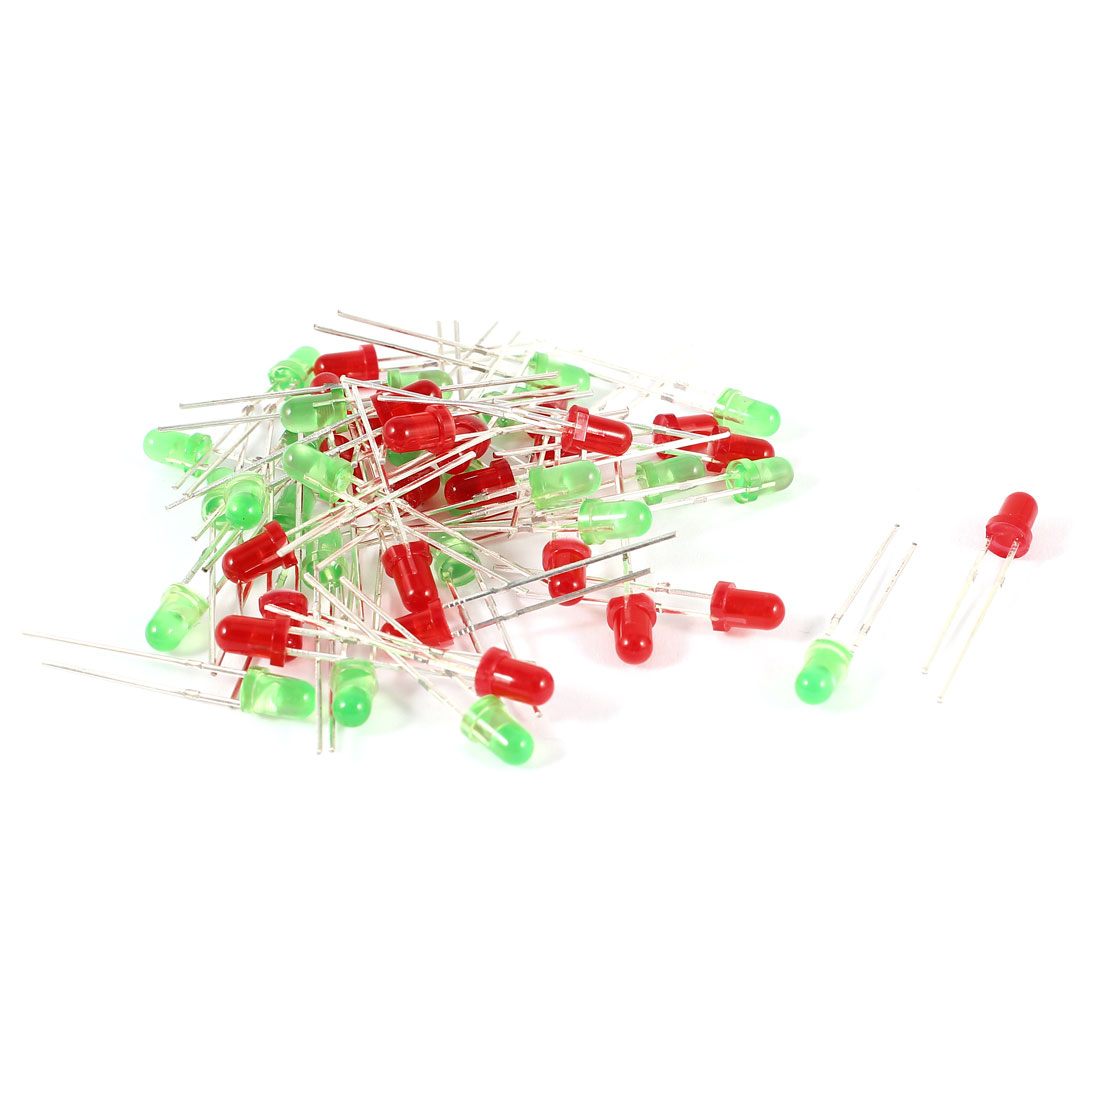 50 Pieces Straw Hat 3mm Red Green LED Light Emitting Diode DC 2.5-3.0V